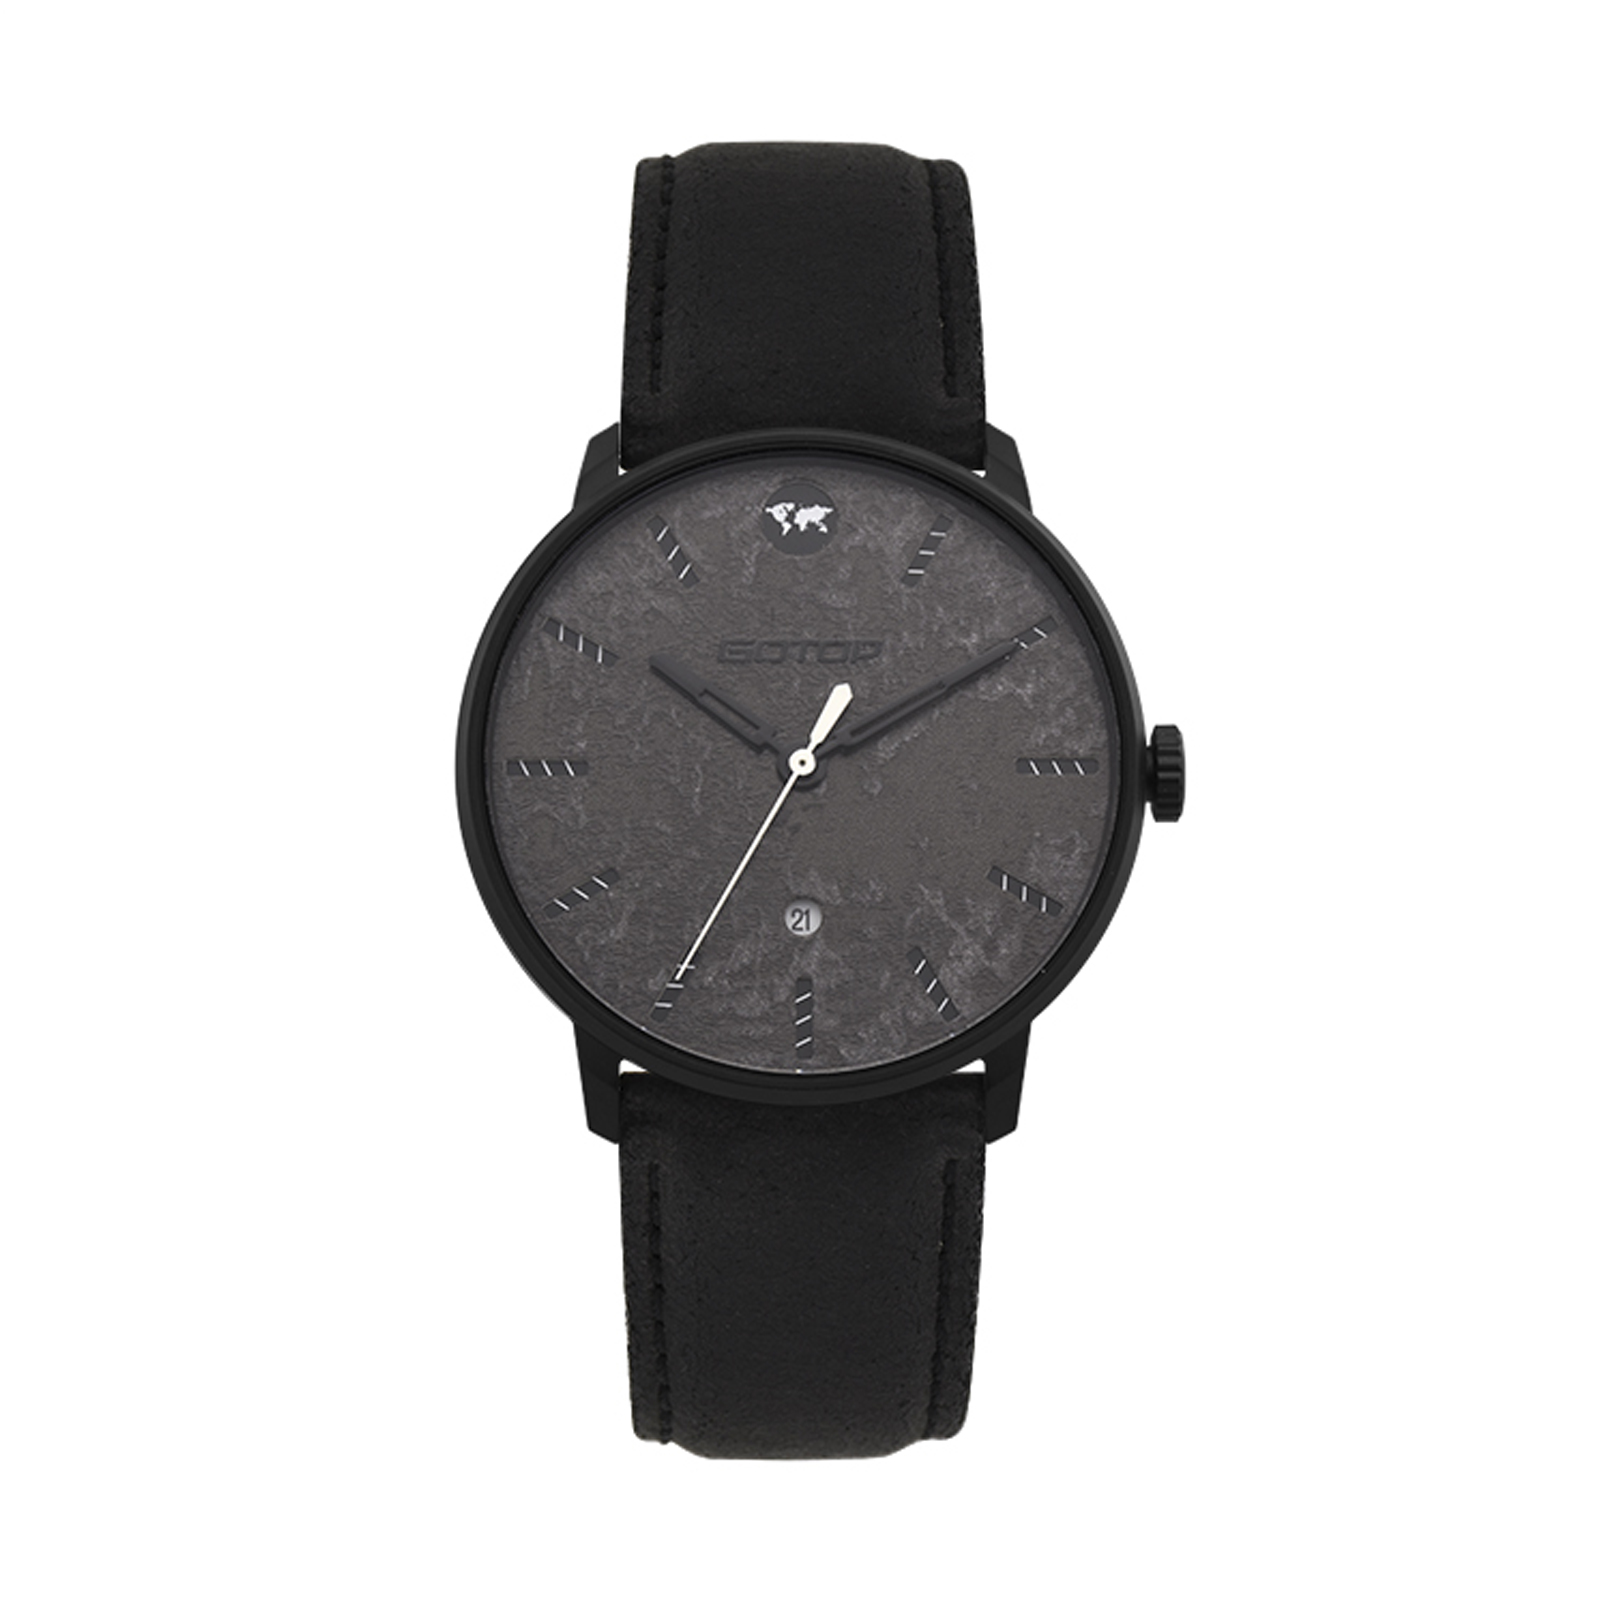 Men's Black Watch With Leather Strap